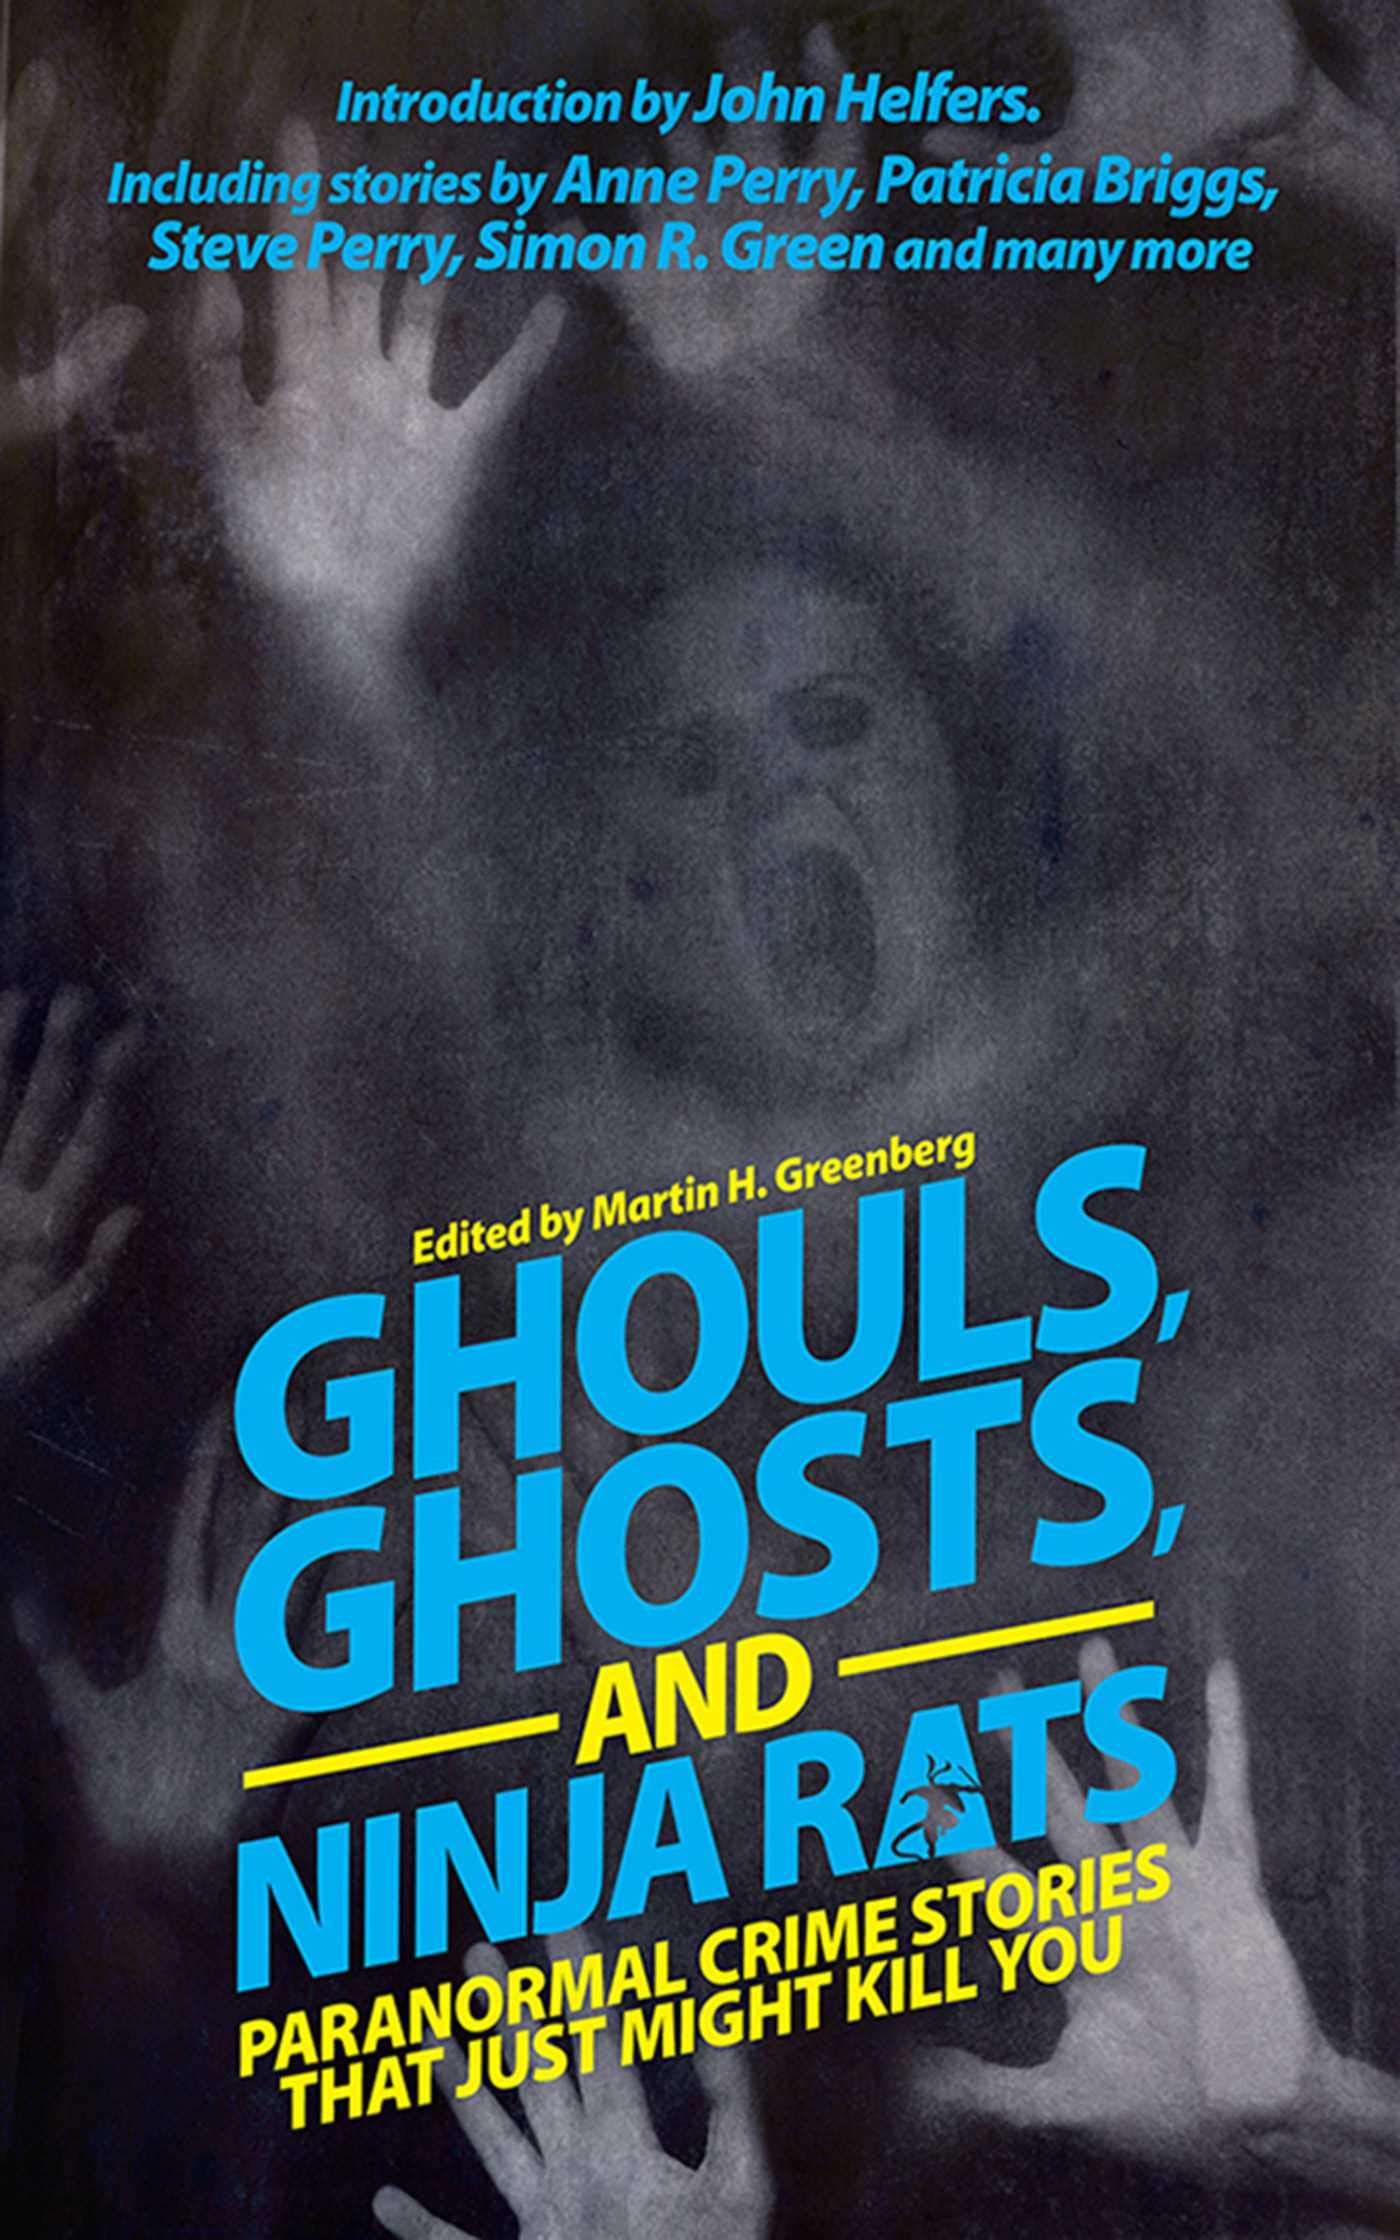 Ghouls, Ghosts, and Ninja Rats: Paranormal Crime Stories ...